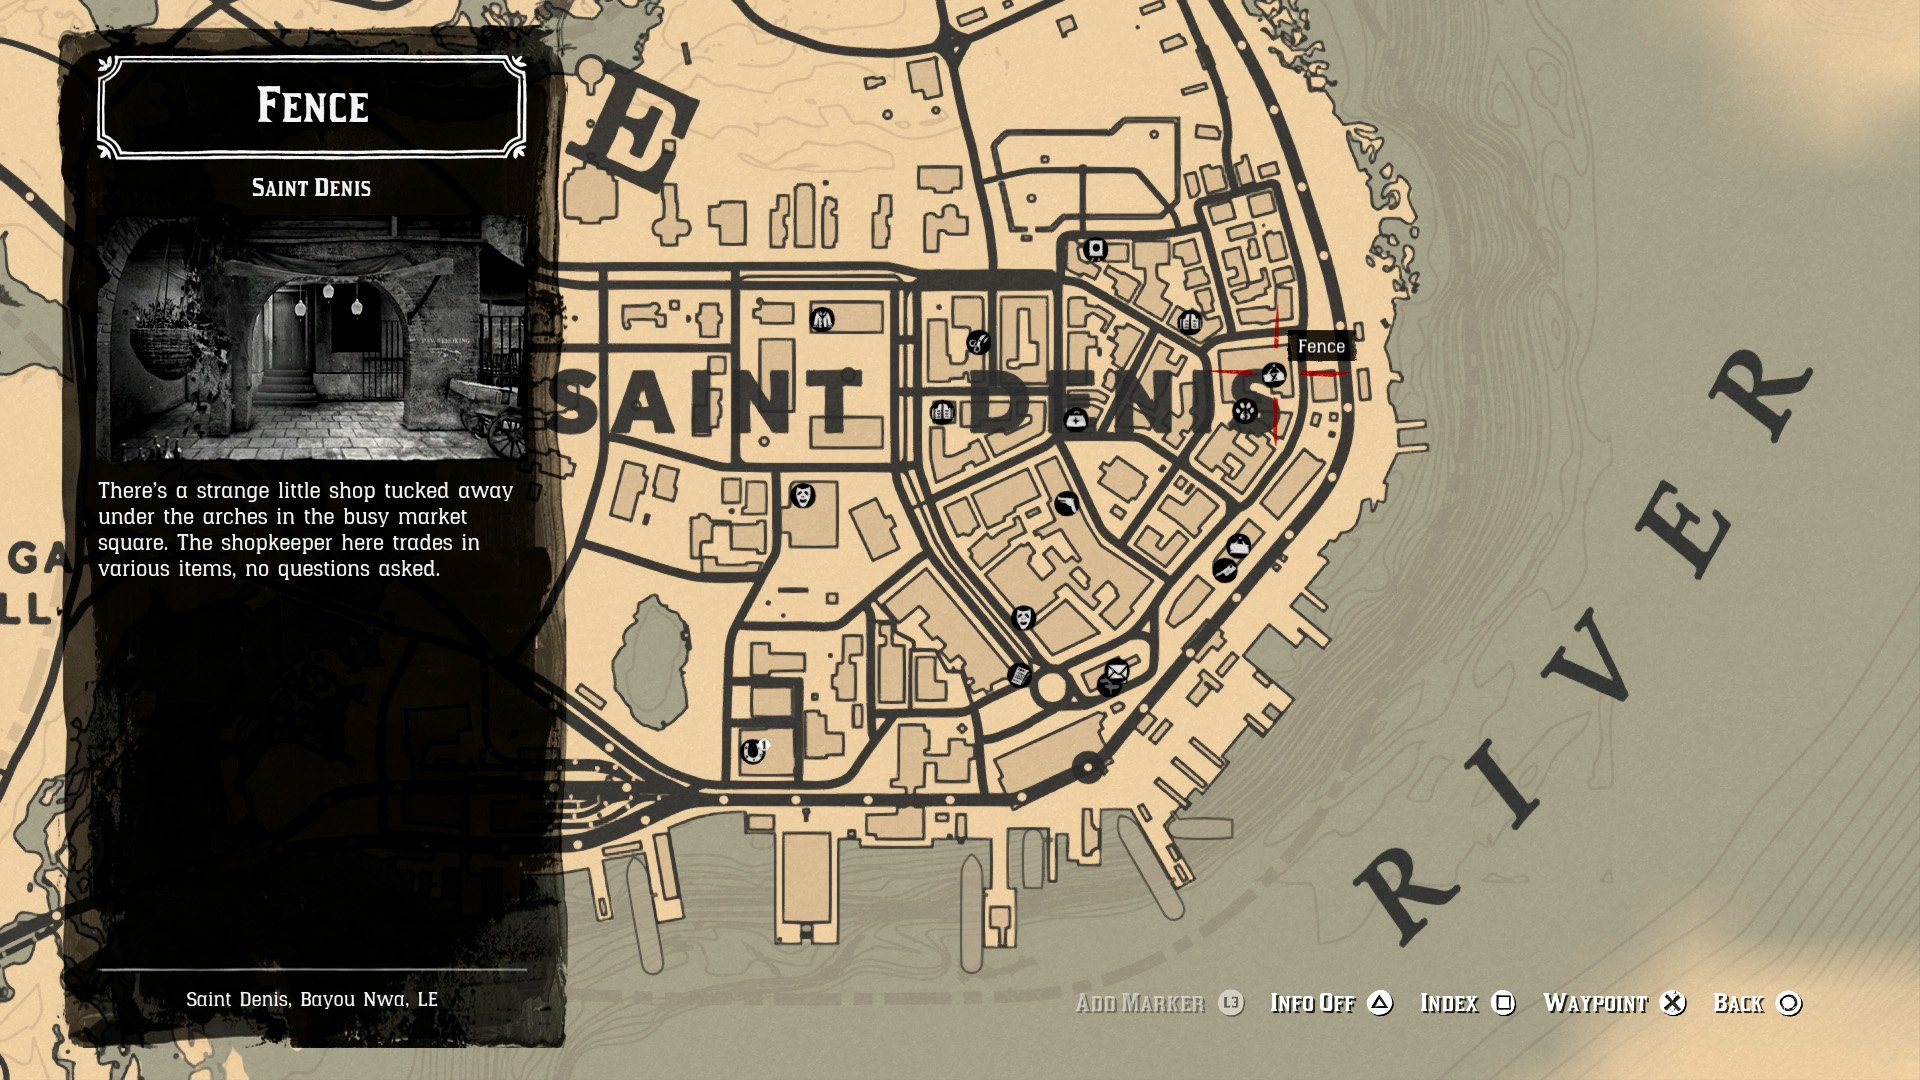 Saint Denis fence location - Saint Denis